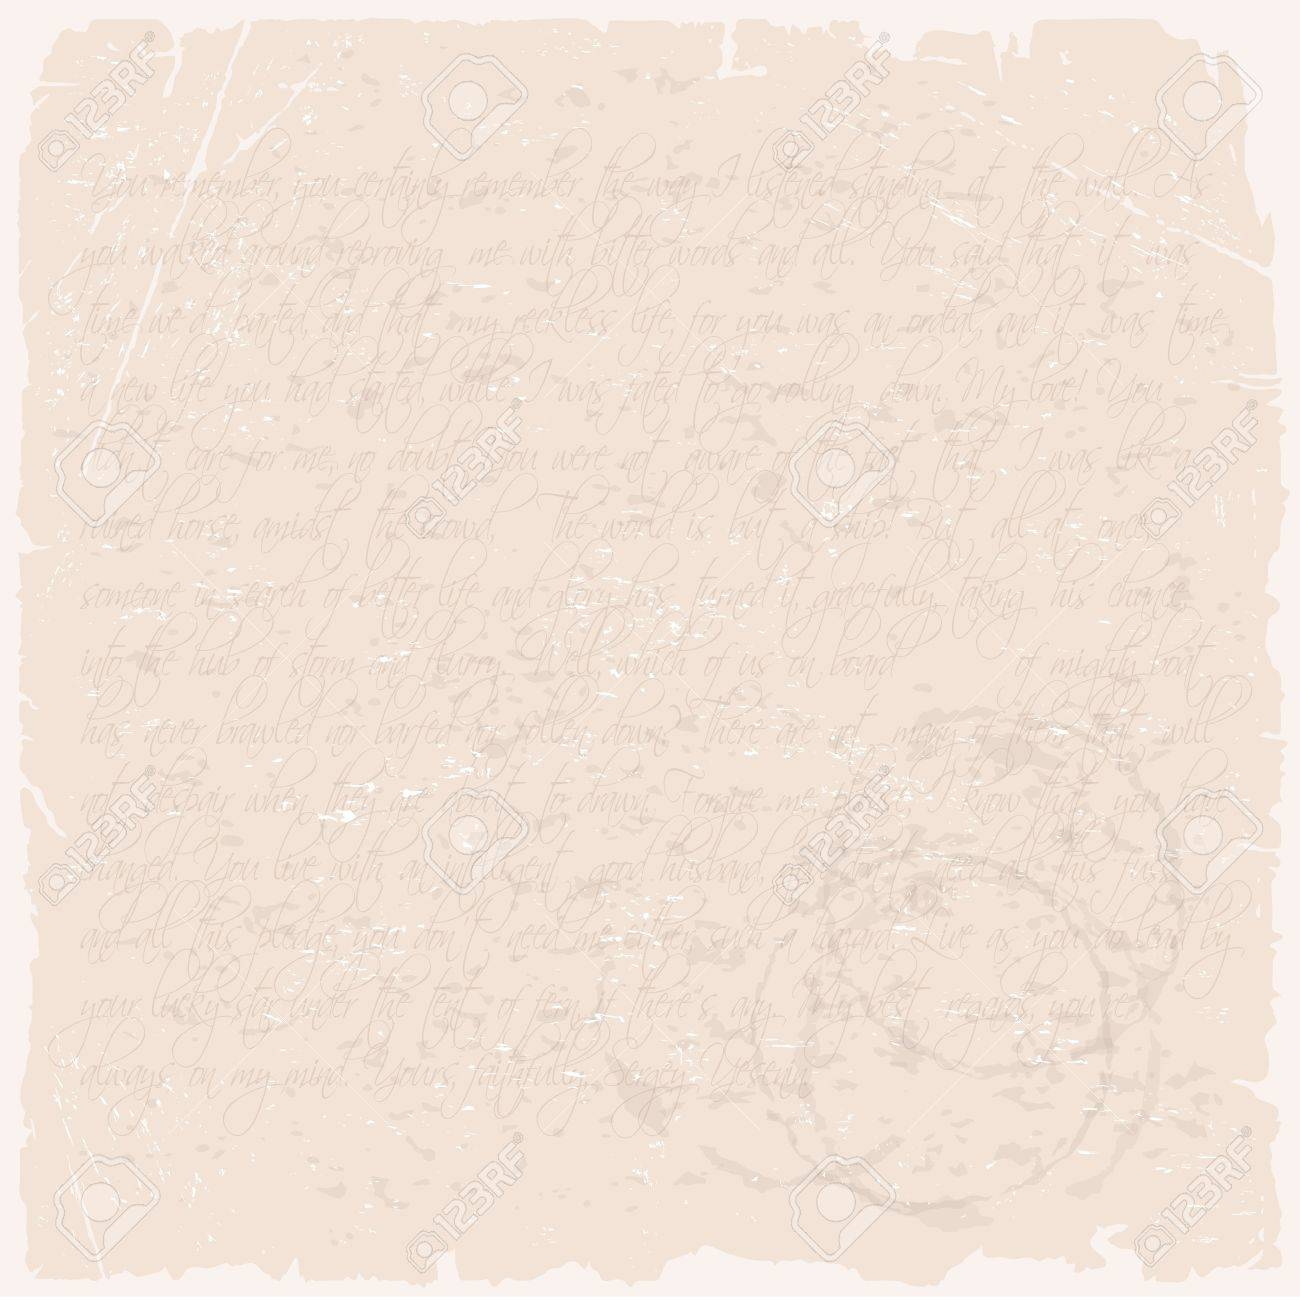 vector grunge texture of a letter on beige old paper royalty free